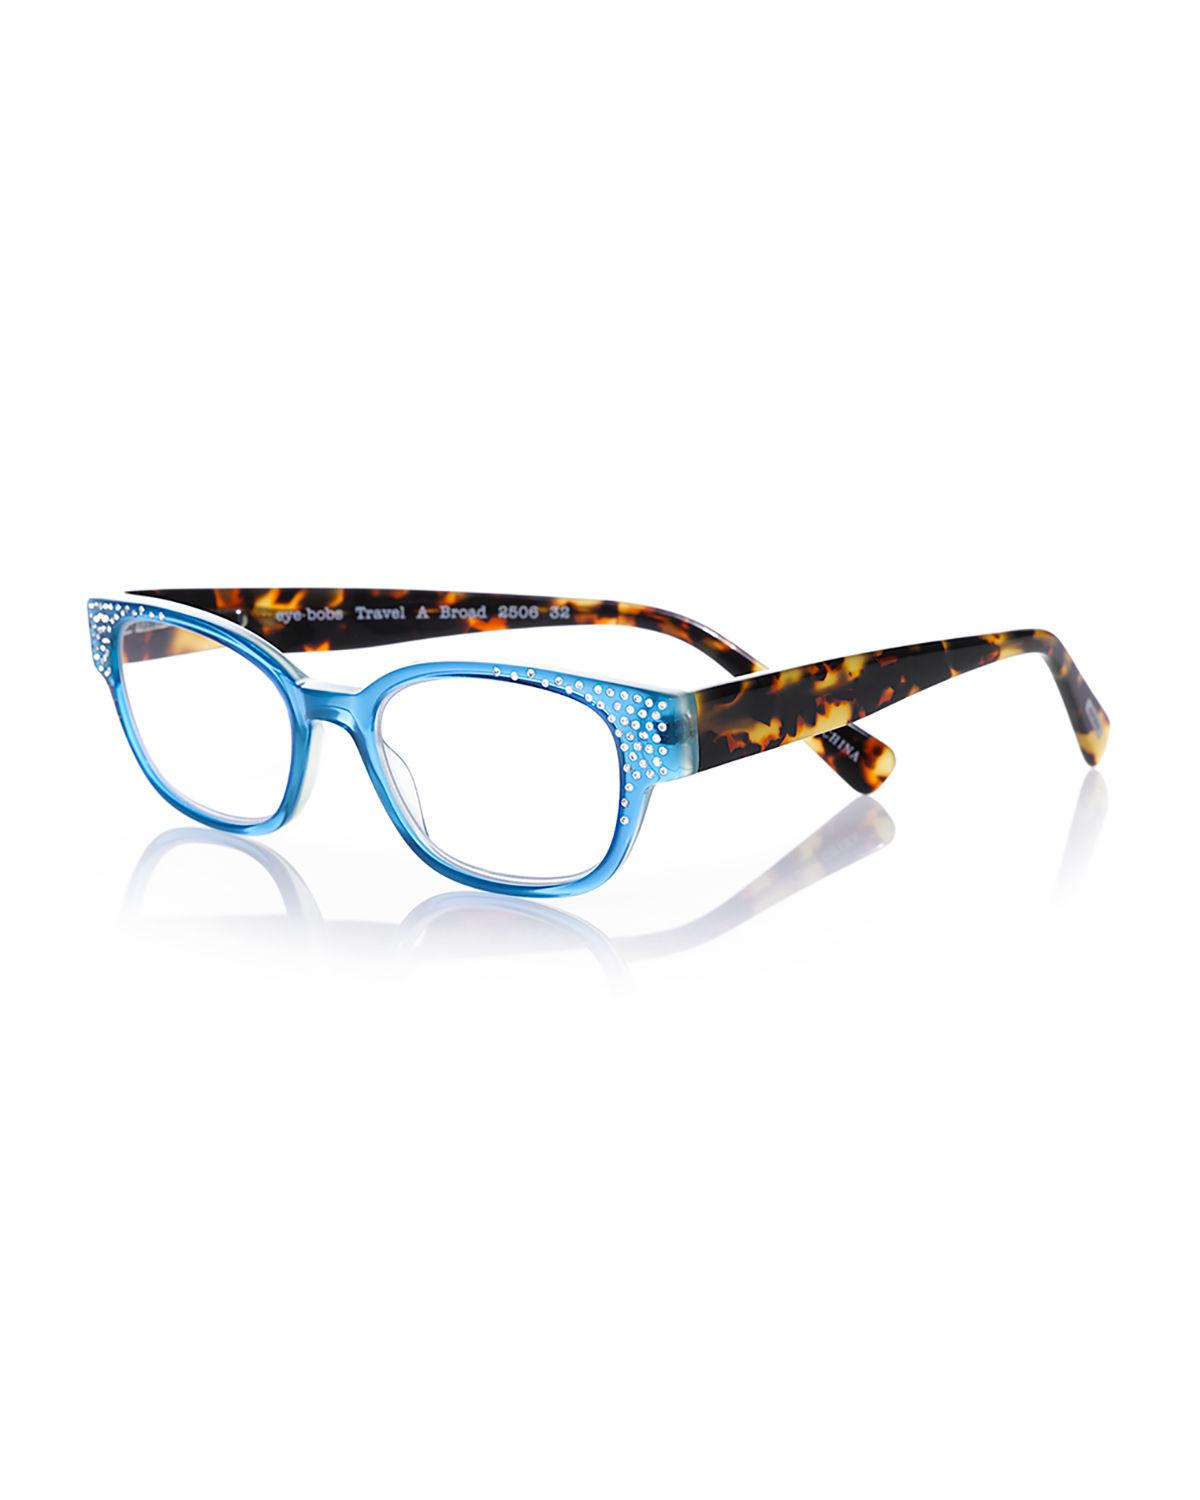 d0c1487c1e Lyst - Eyebobs Study Abroad Square Rhinestone Readers in Blue